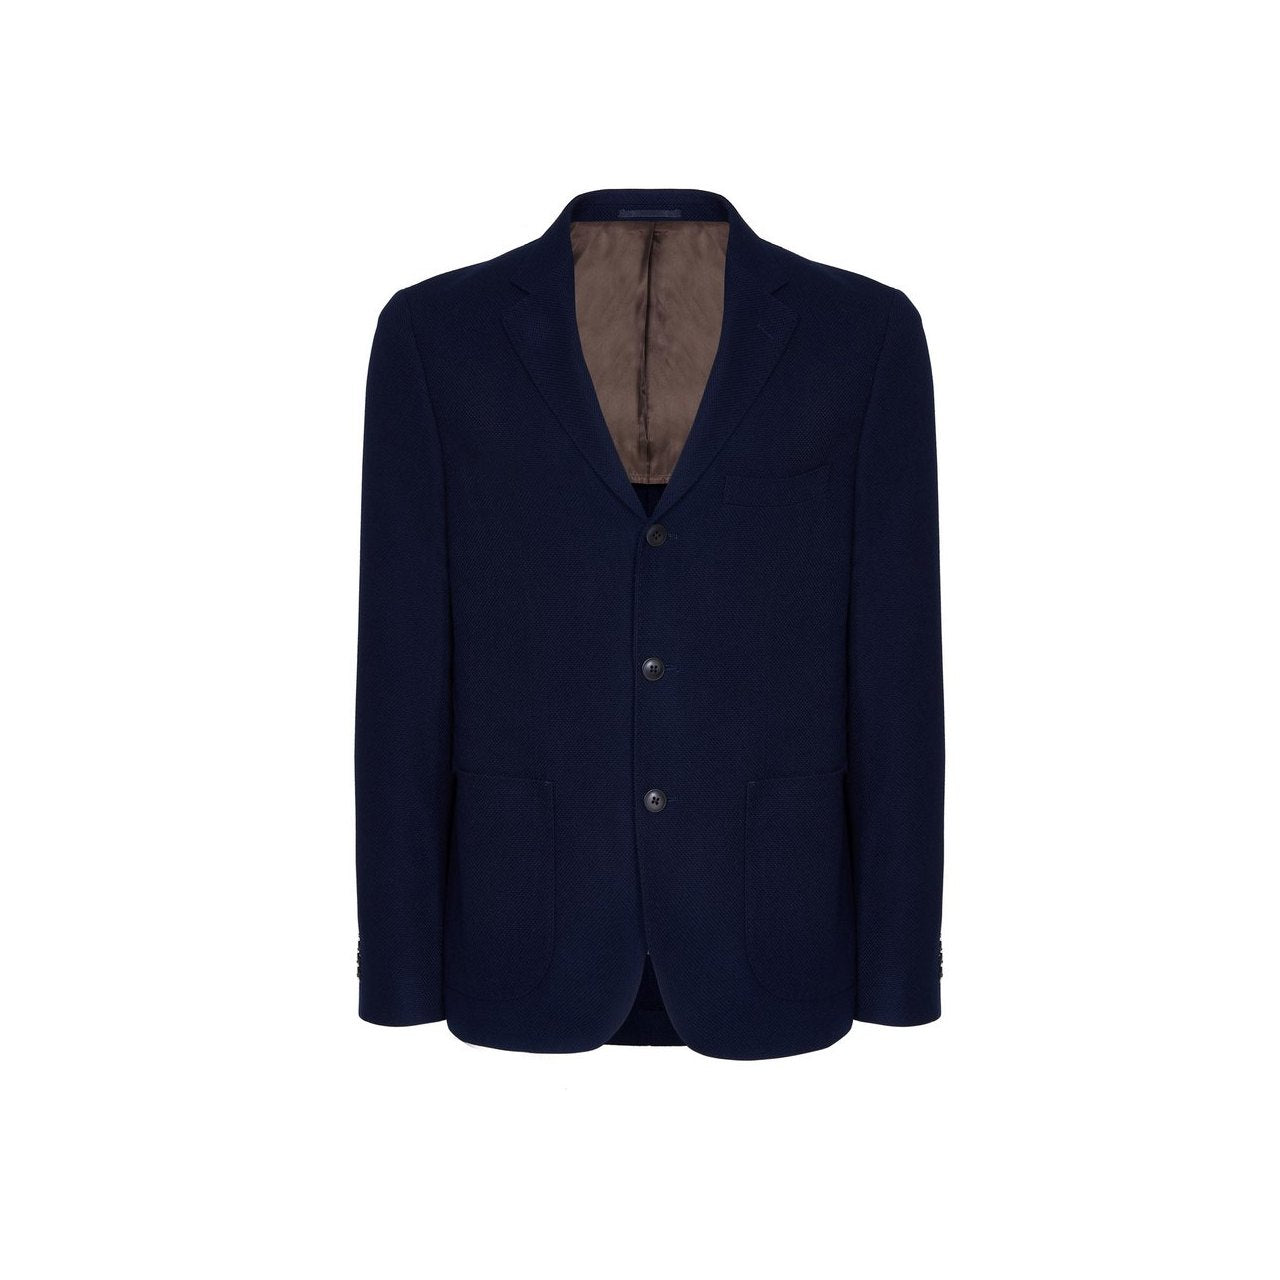 GIACCA CAMICISSIMA CKGSPHACG0J2062BLUE NAVY | Fronte | Salotto Shop